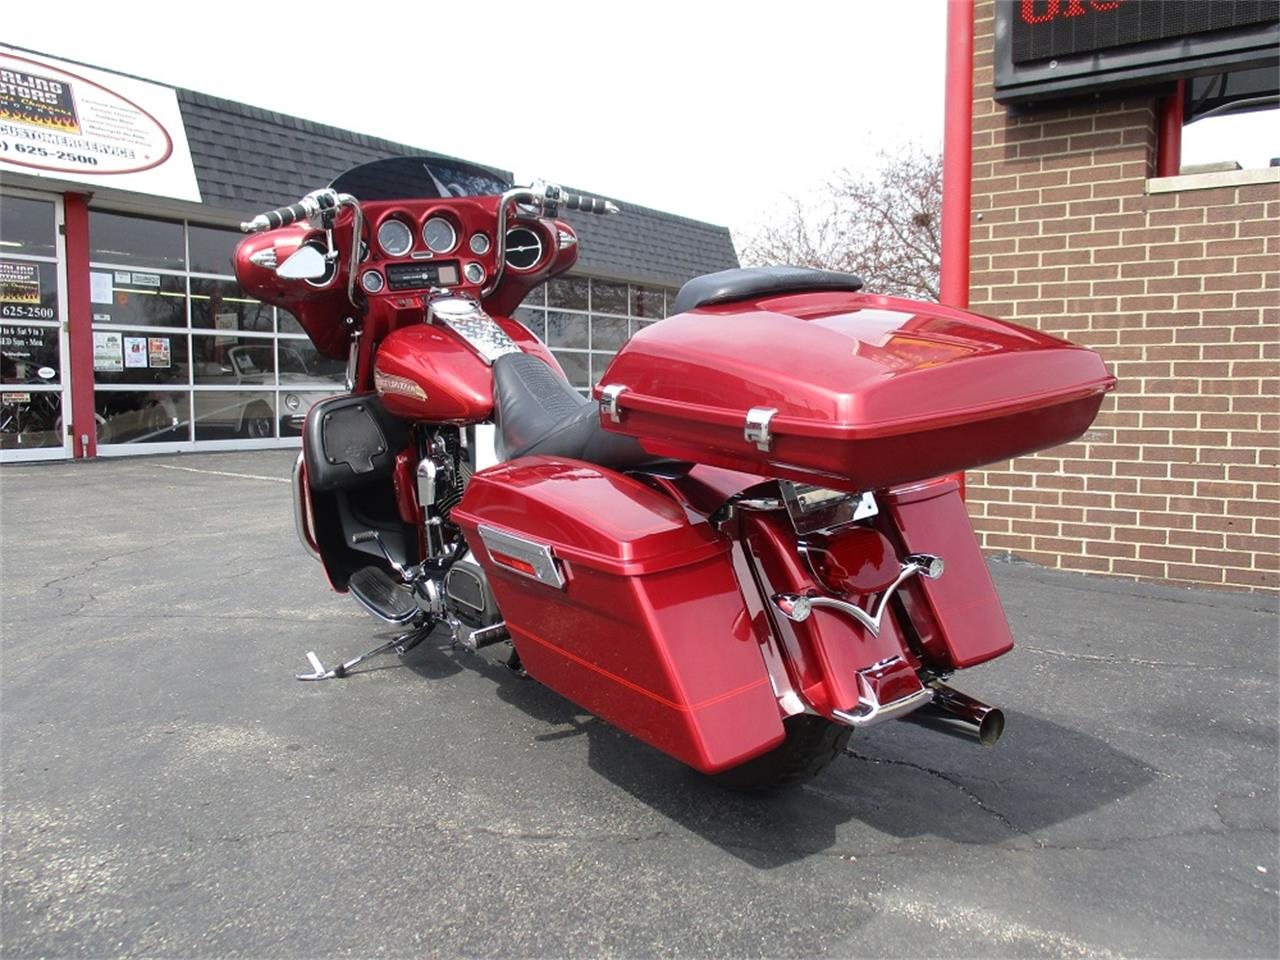 Large Picture of 2005 Electra Glide located in Illinois - $9,500.00 - PR89